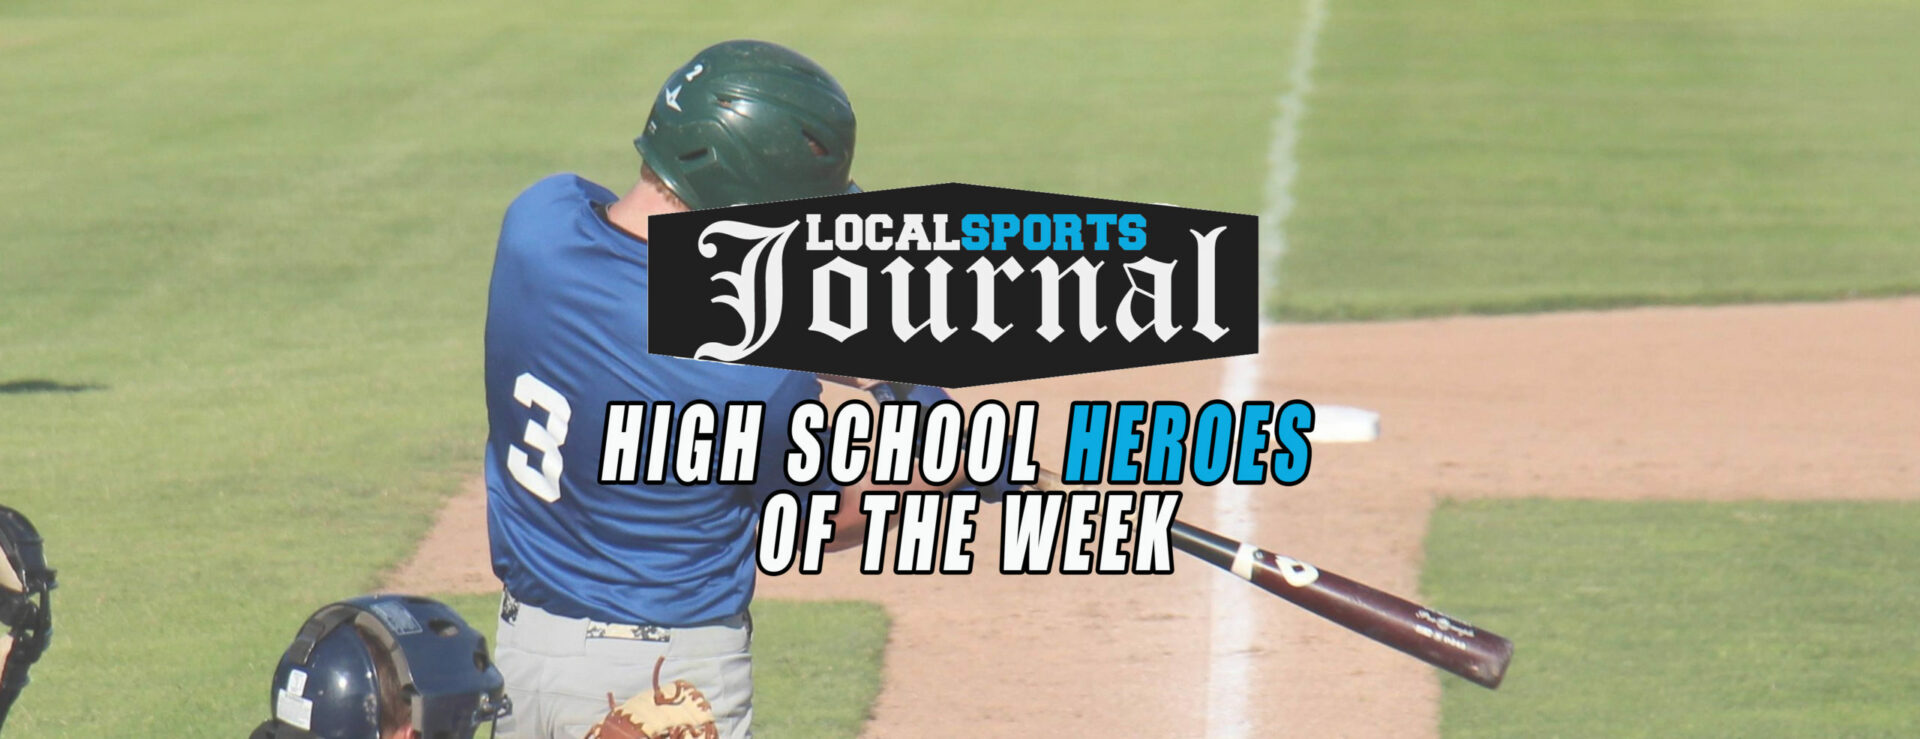 LSJ High School Heroes of the Week: Ravenna's Gillard is No. 1 for being the first pitcher to beat Oakridge this season